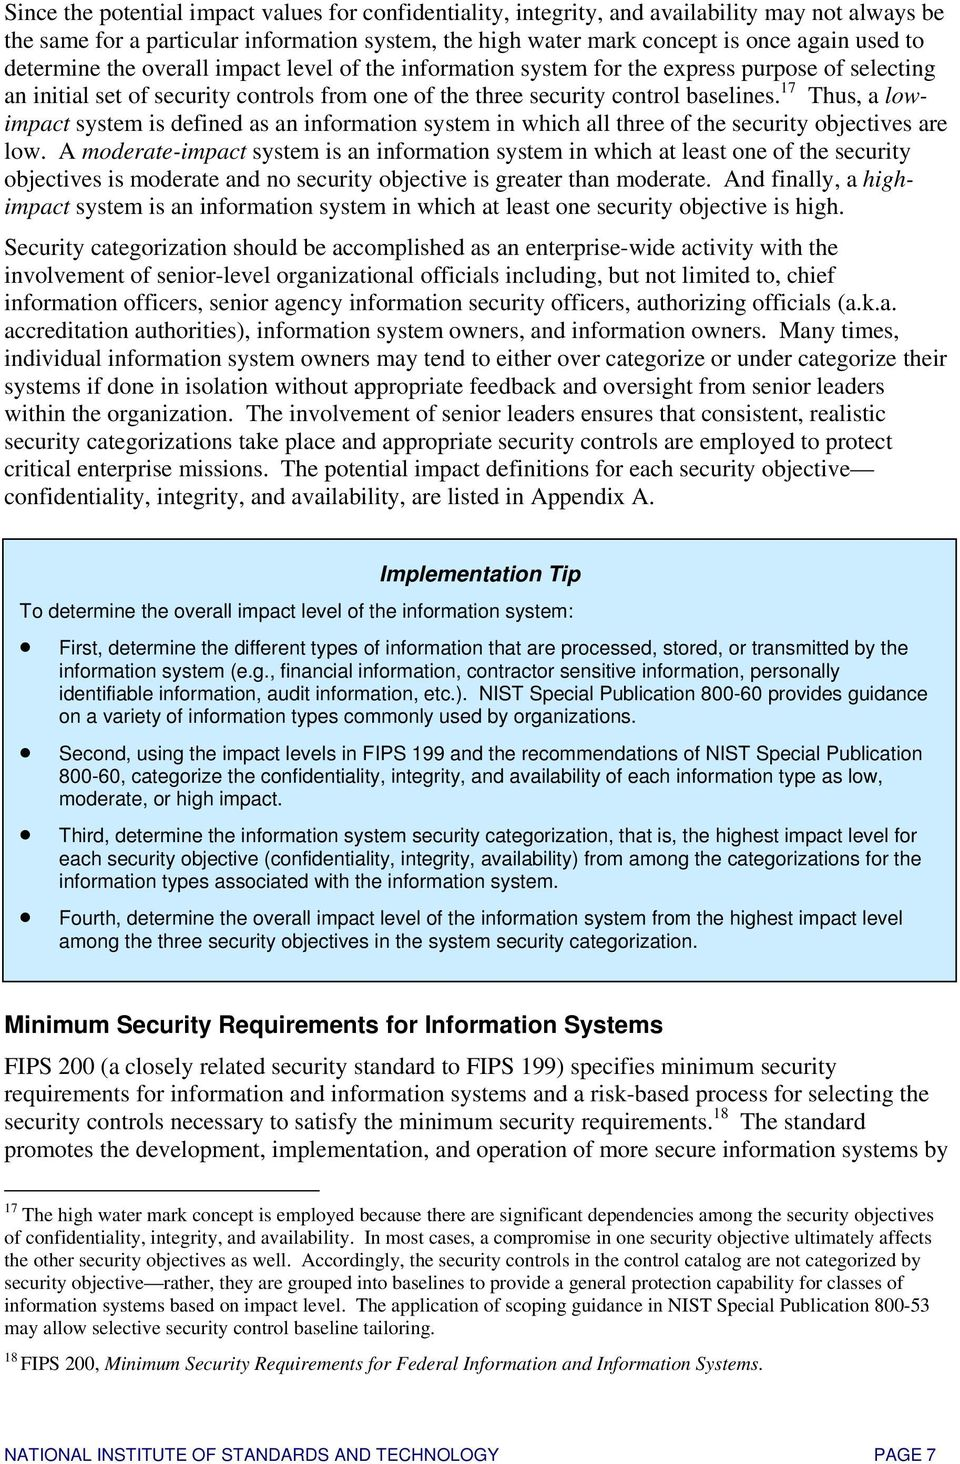 17 Thus, a lowimpact system is defined as an information system in which all three of the security objectives are low.